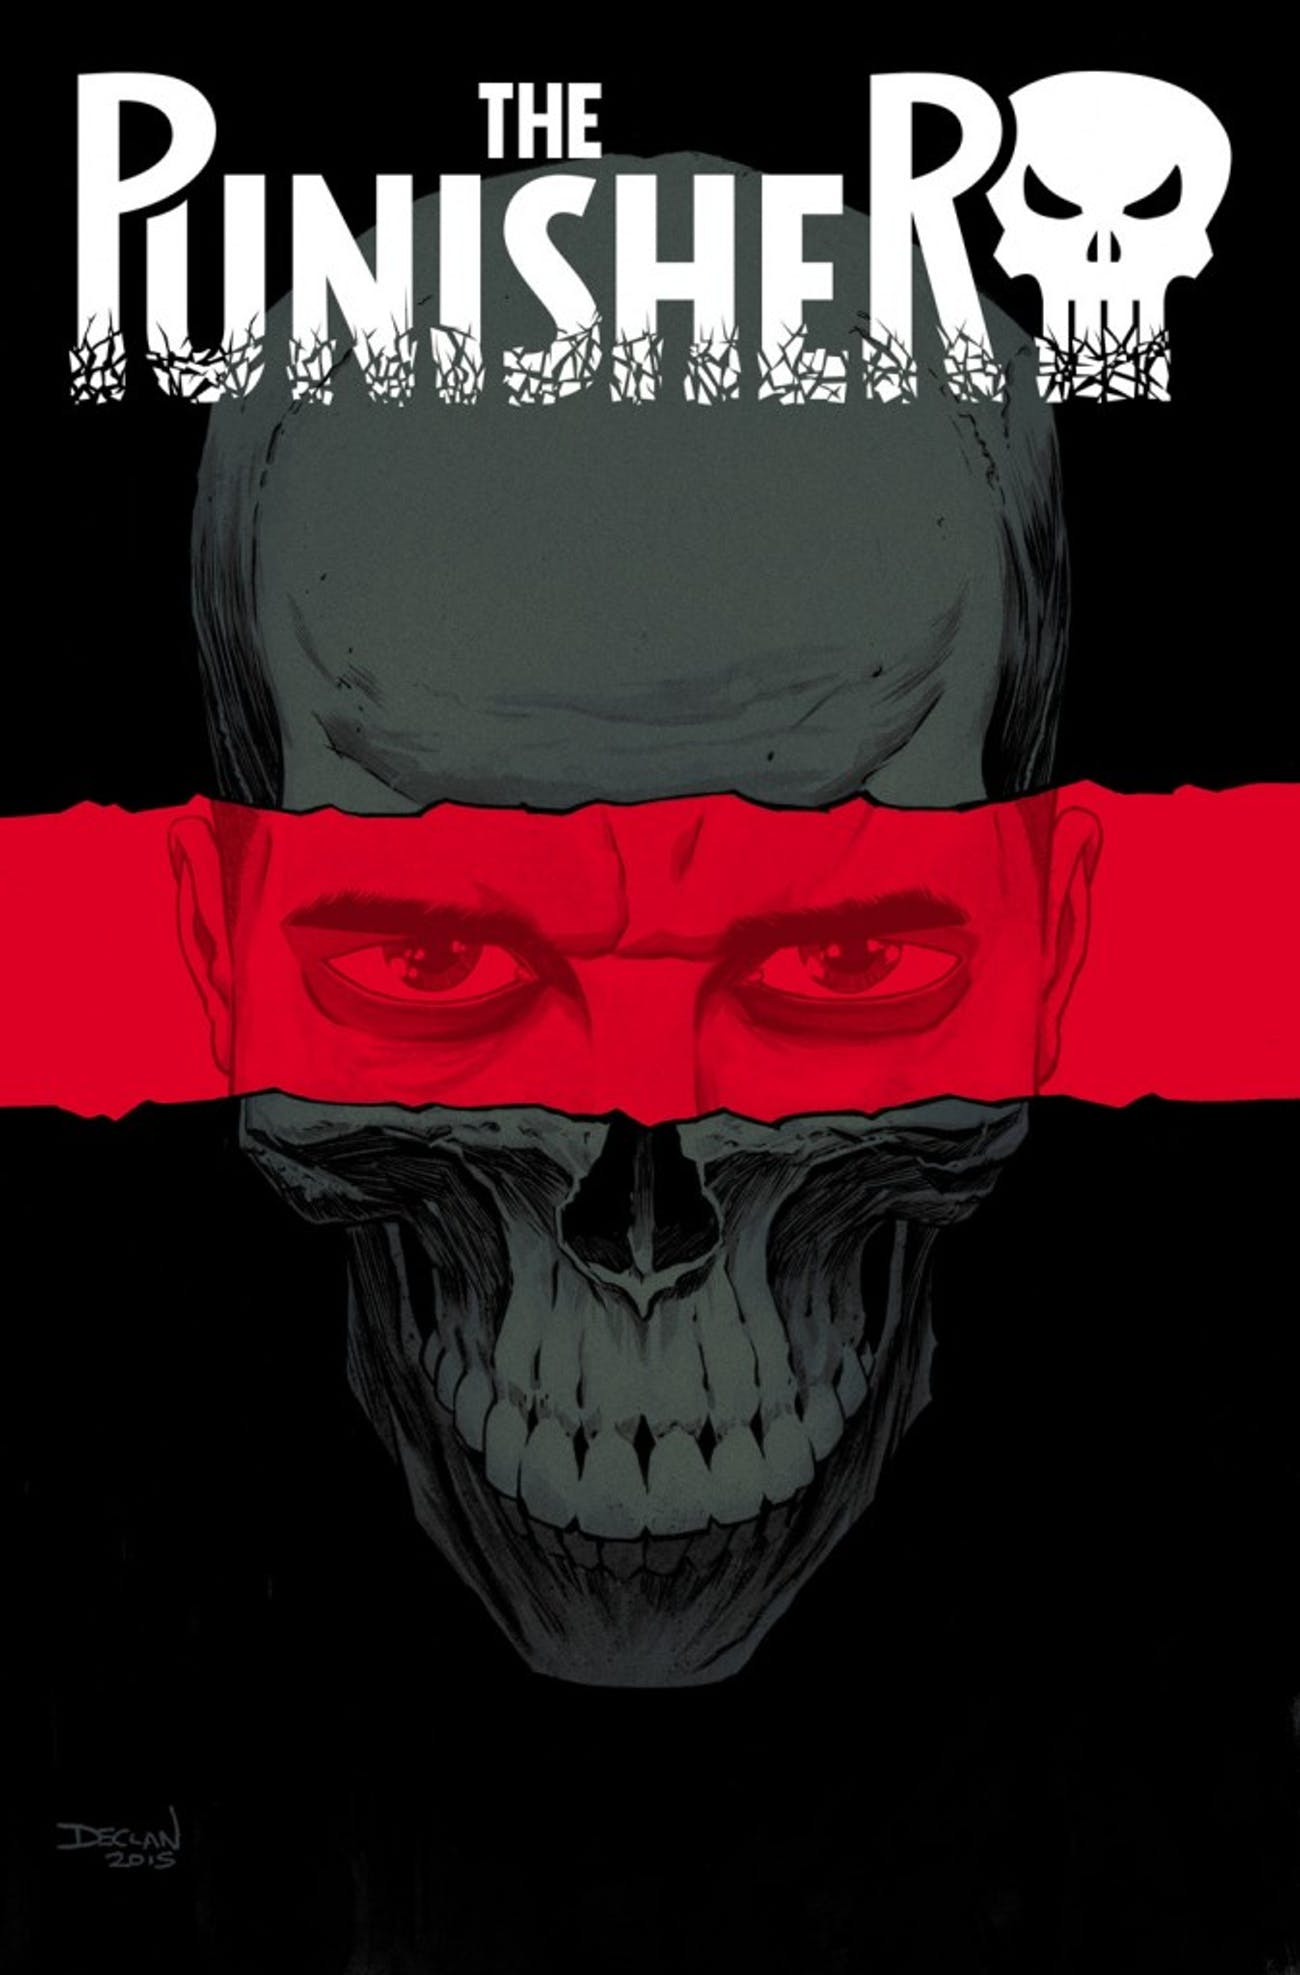 The Punisher Becky Cloonan